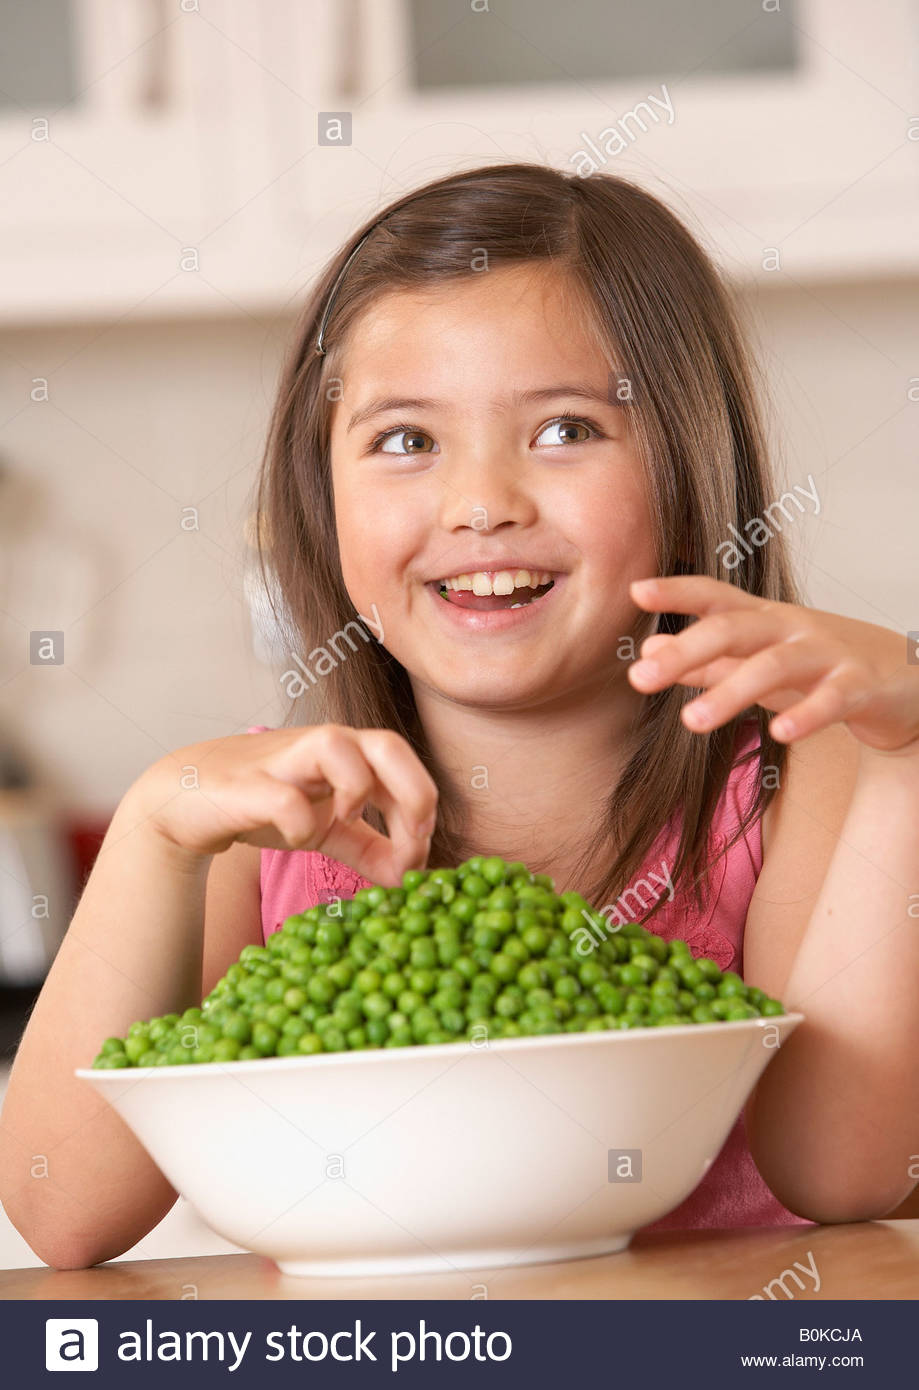 Young girl in kitchen with a bowl of green peas smiling - Stock Image